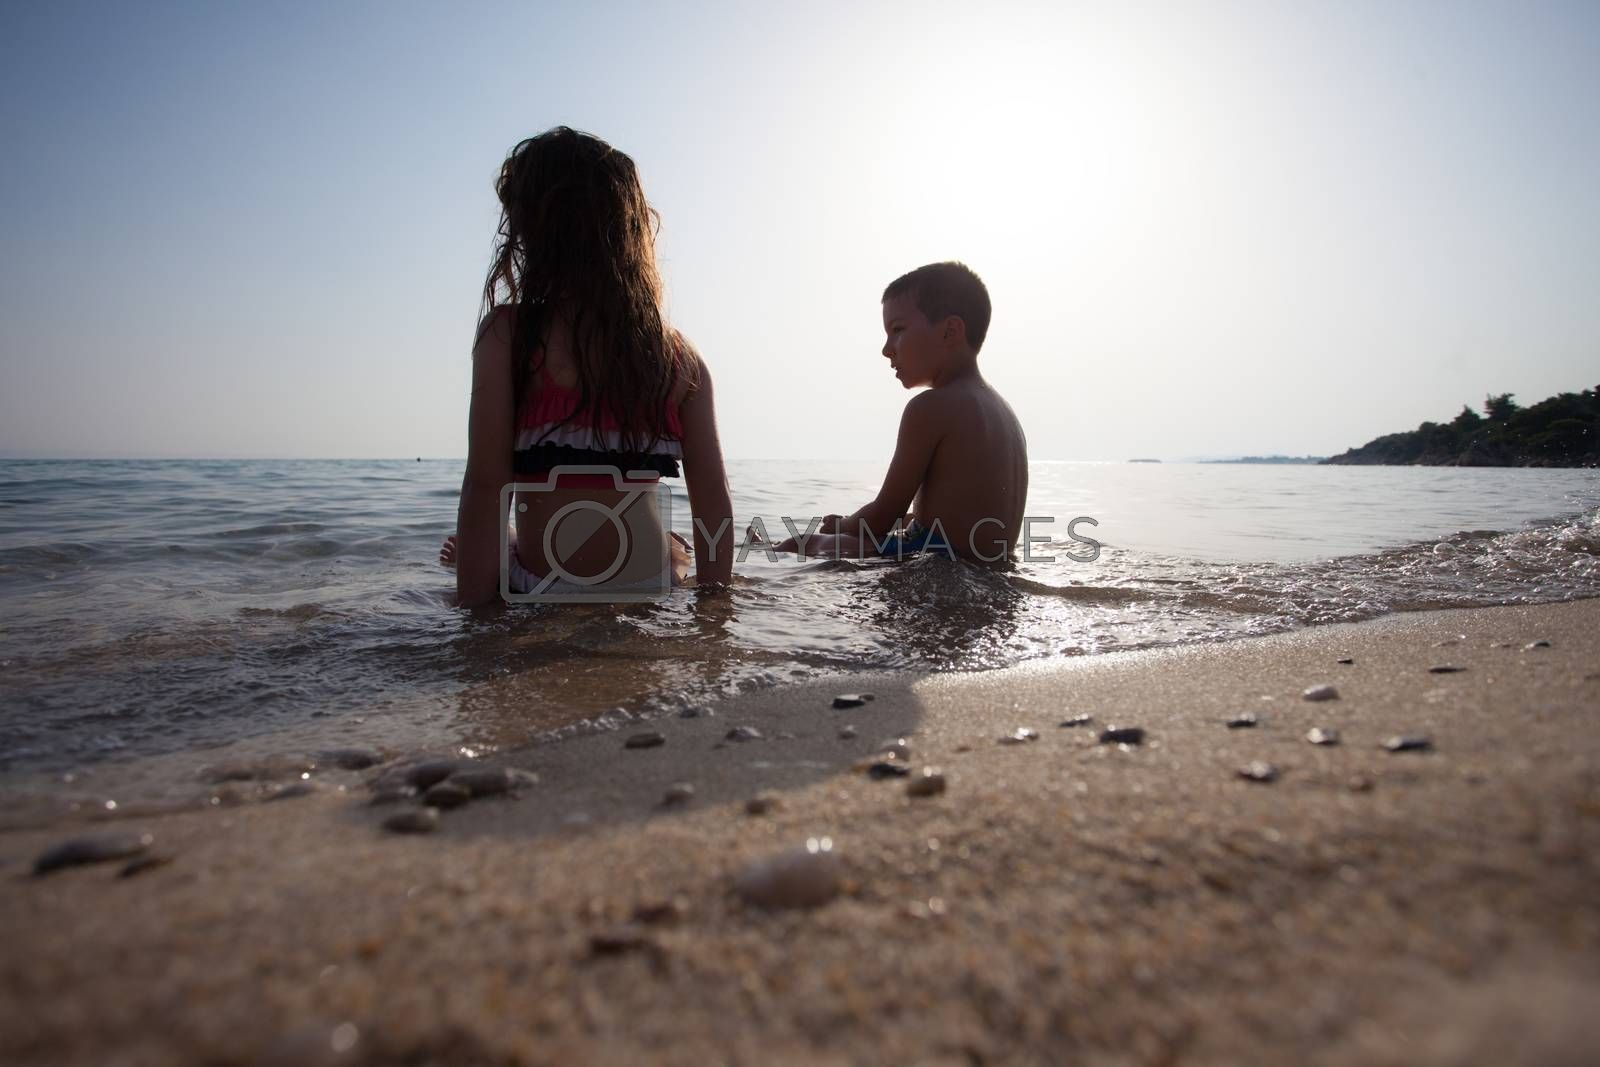 Couple of kids around six are sitting in the water of sea or ocean.